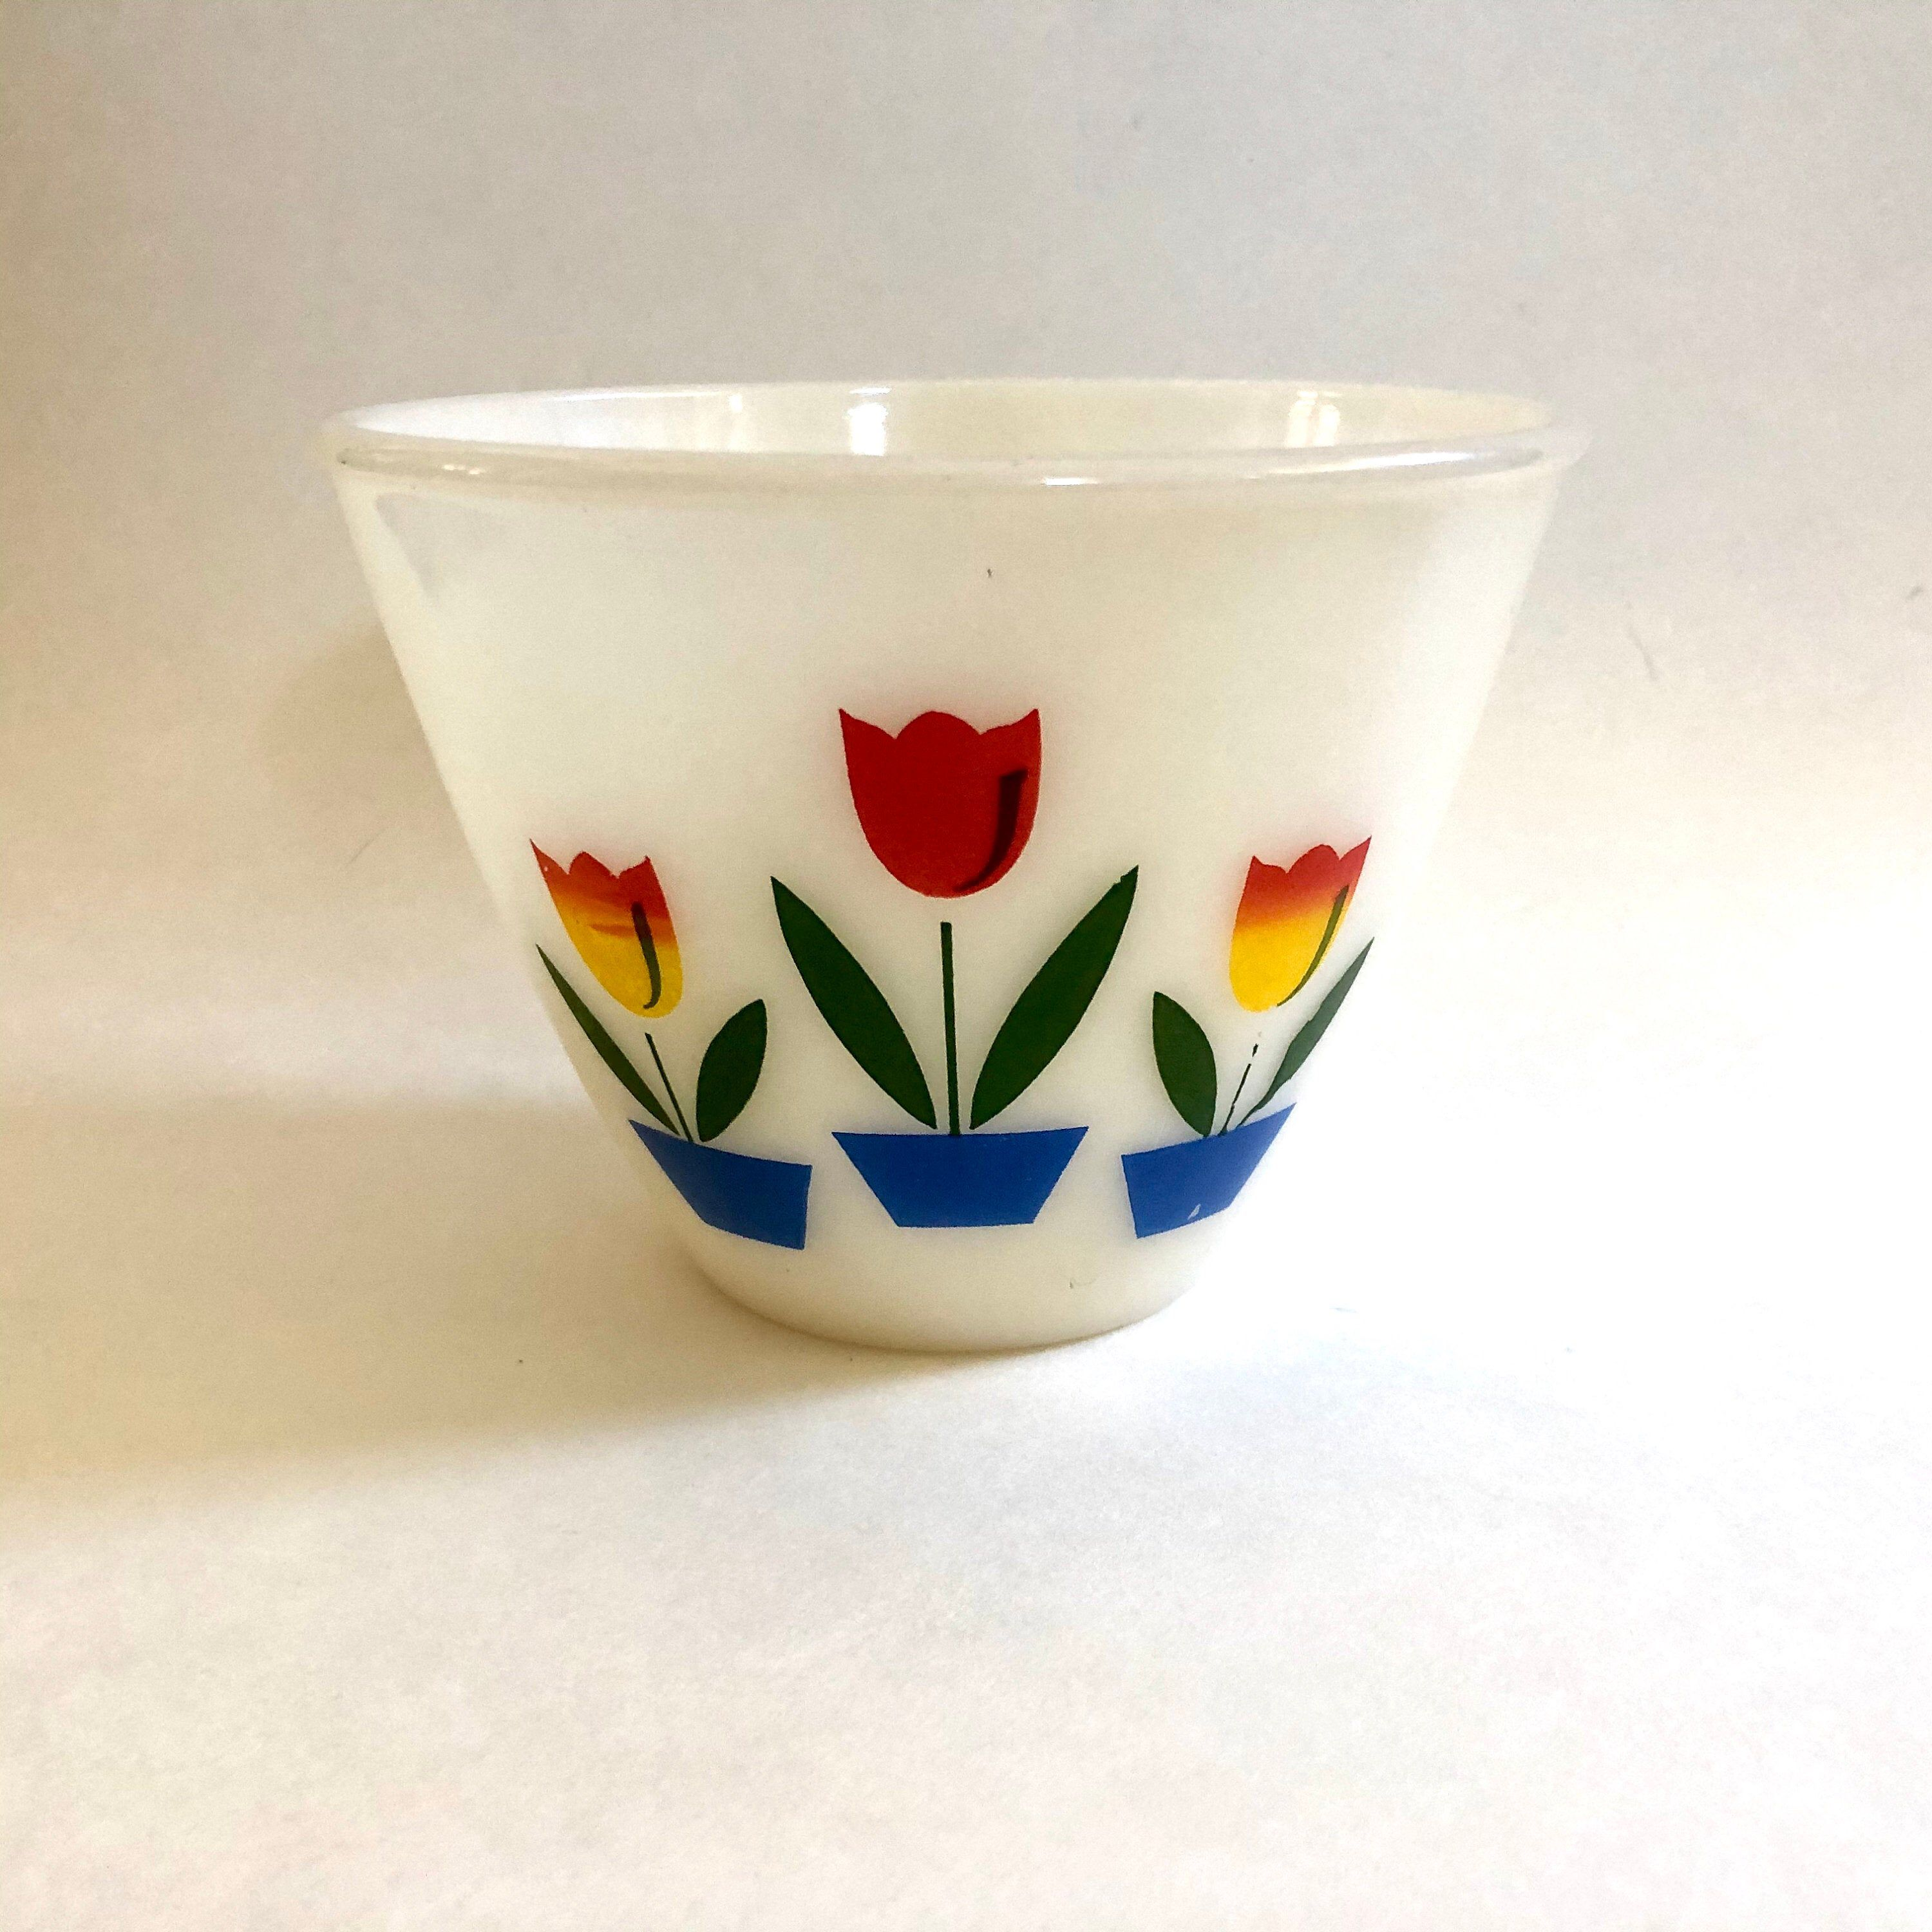 "Excited to share this item from my #etsy shop: Fire-King Oven Ware Small Tulip Bowl 4"" Tall 5.7"" Diameter Mixing Nesting Splashproof #glass #gift #baking #milkglass #fireking #floral #flowers"